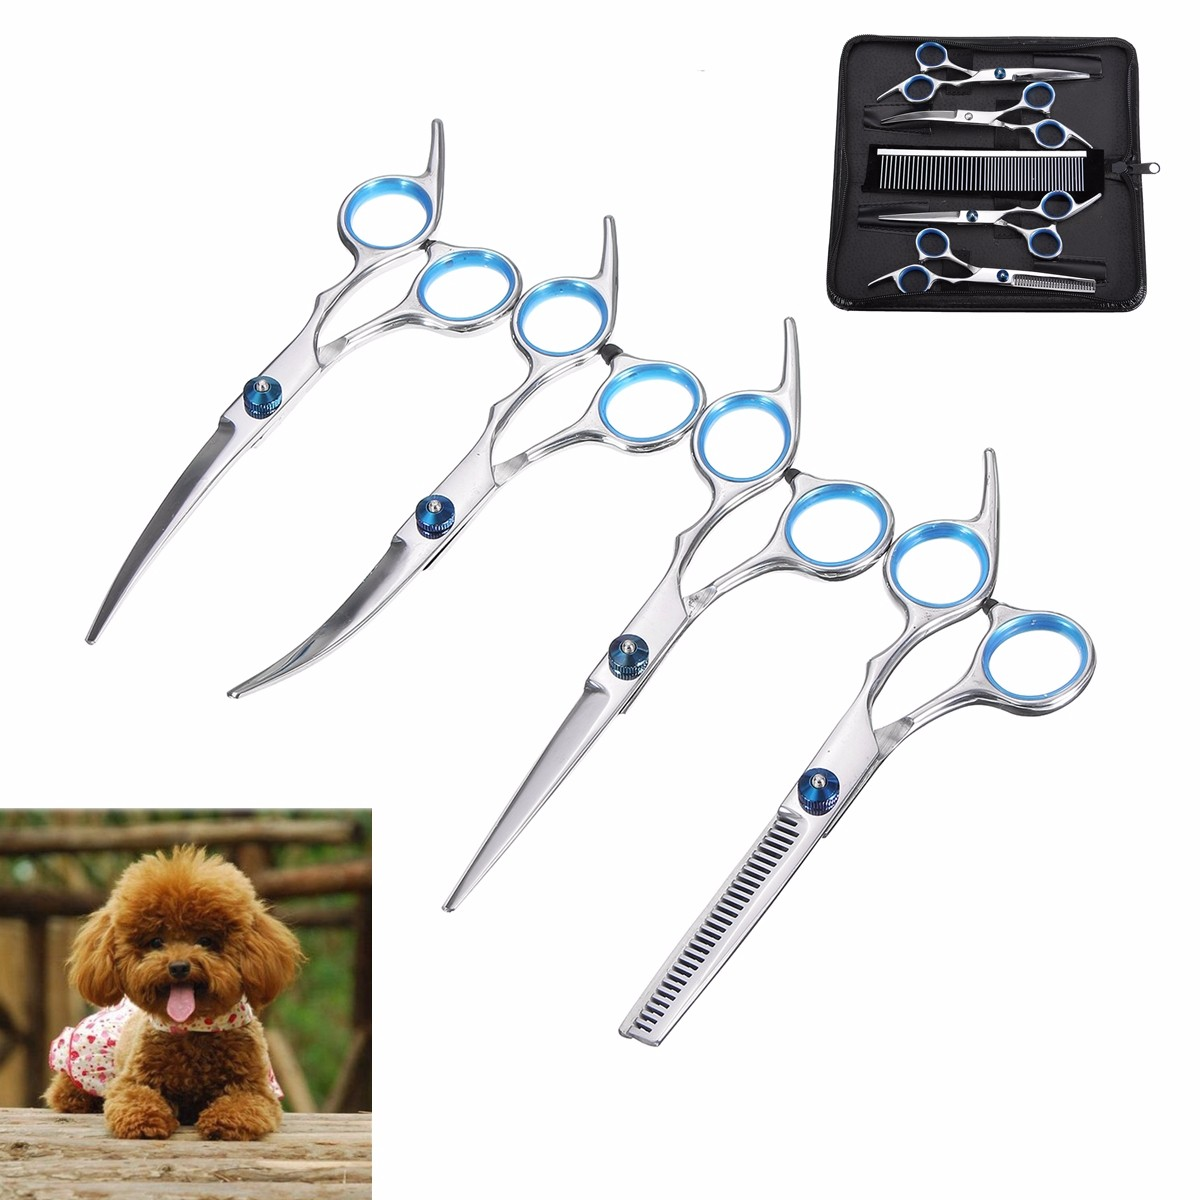 7Pcs/Lot Dog Cat Grooming Scissors Set Straight Curved Cutting Thinning Shears Kit Puppy Hair Trimmer Pet Beauty